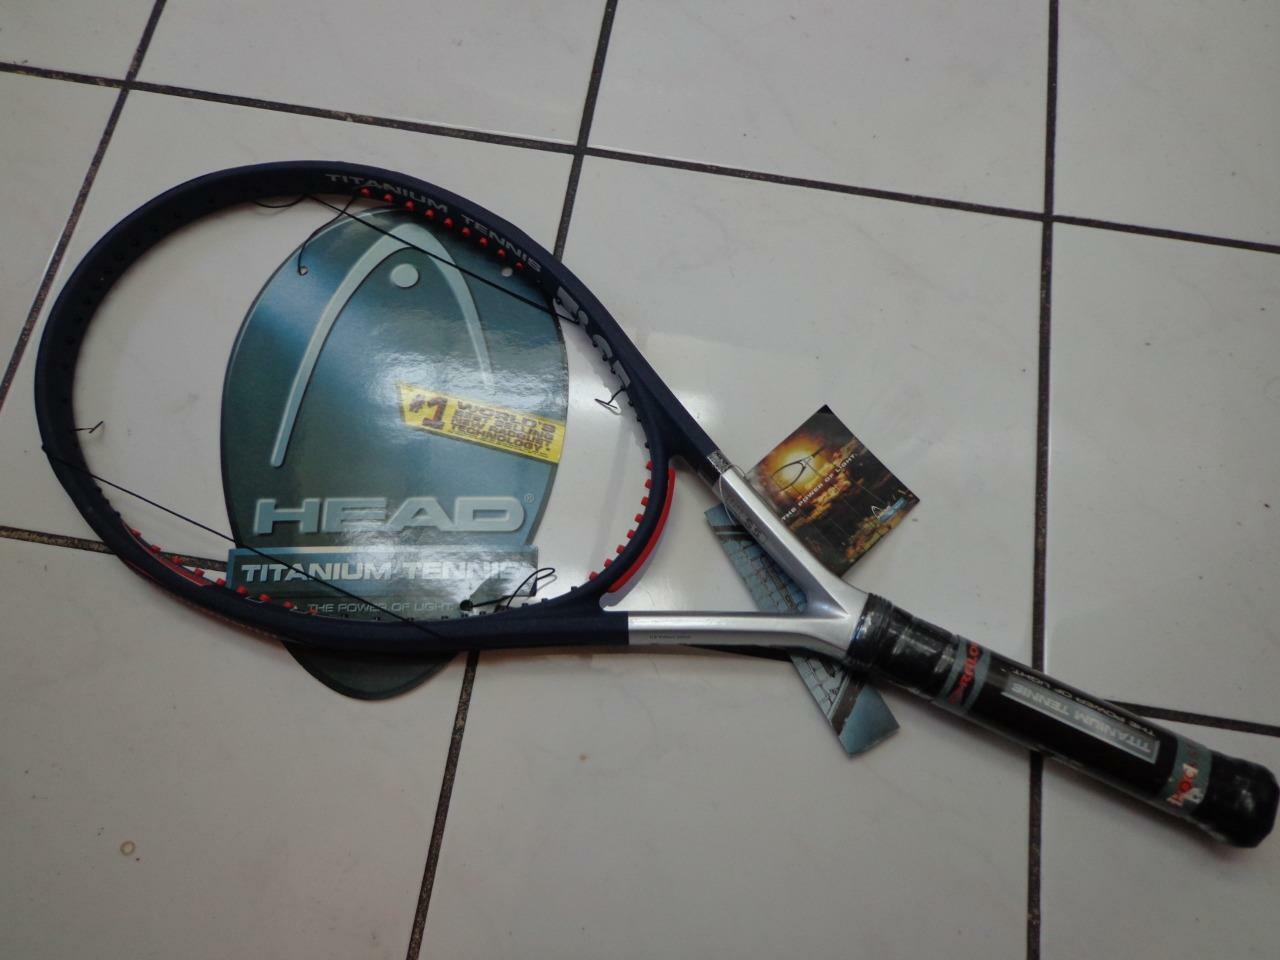 NEW Head Ti. S5 Comfort Zone 4 5/8 grip Tennis Racquet